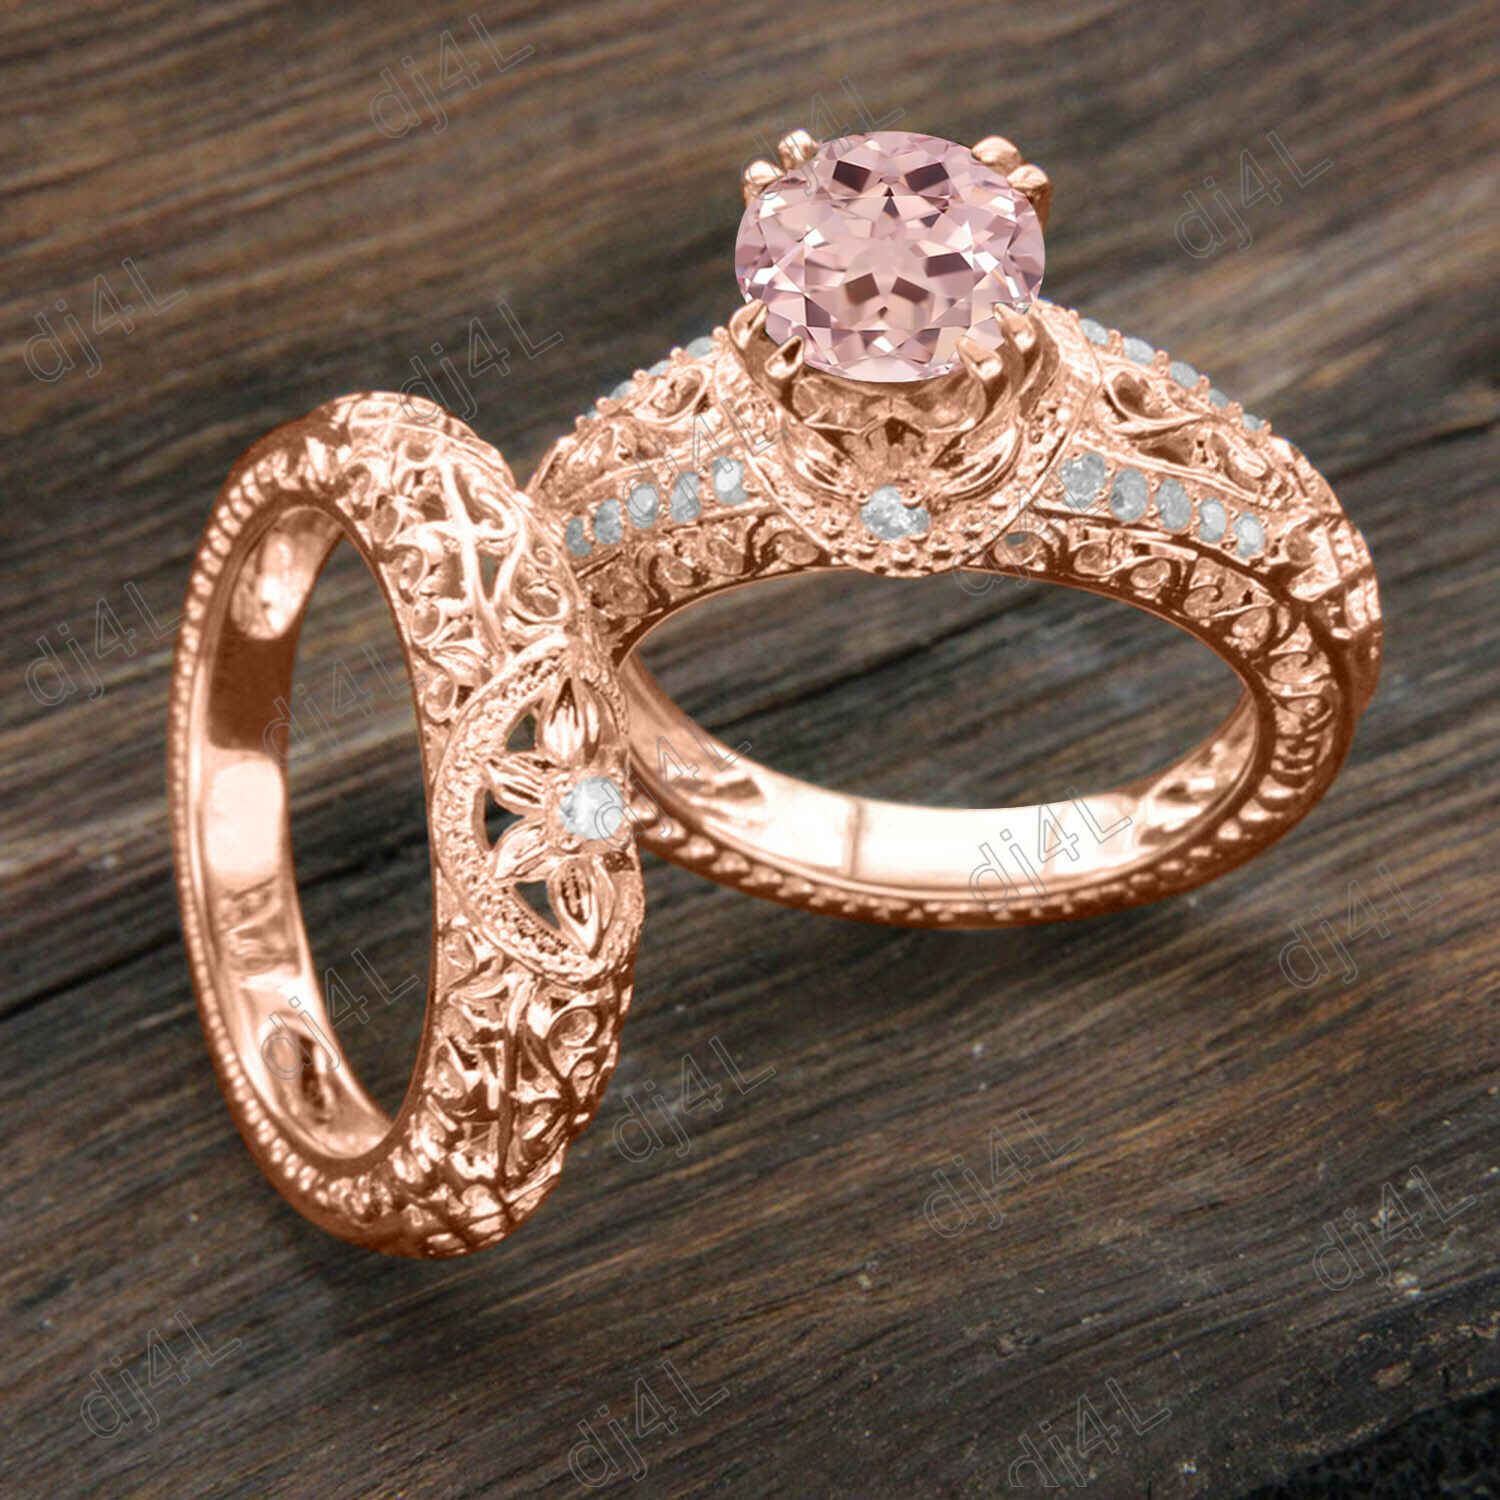 Solid 14K Rose Gold Women's Engagement Ring